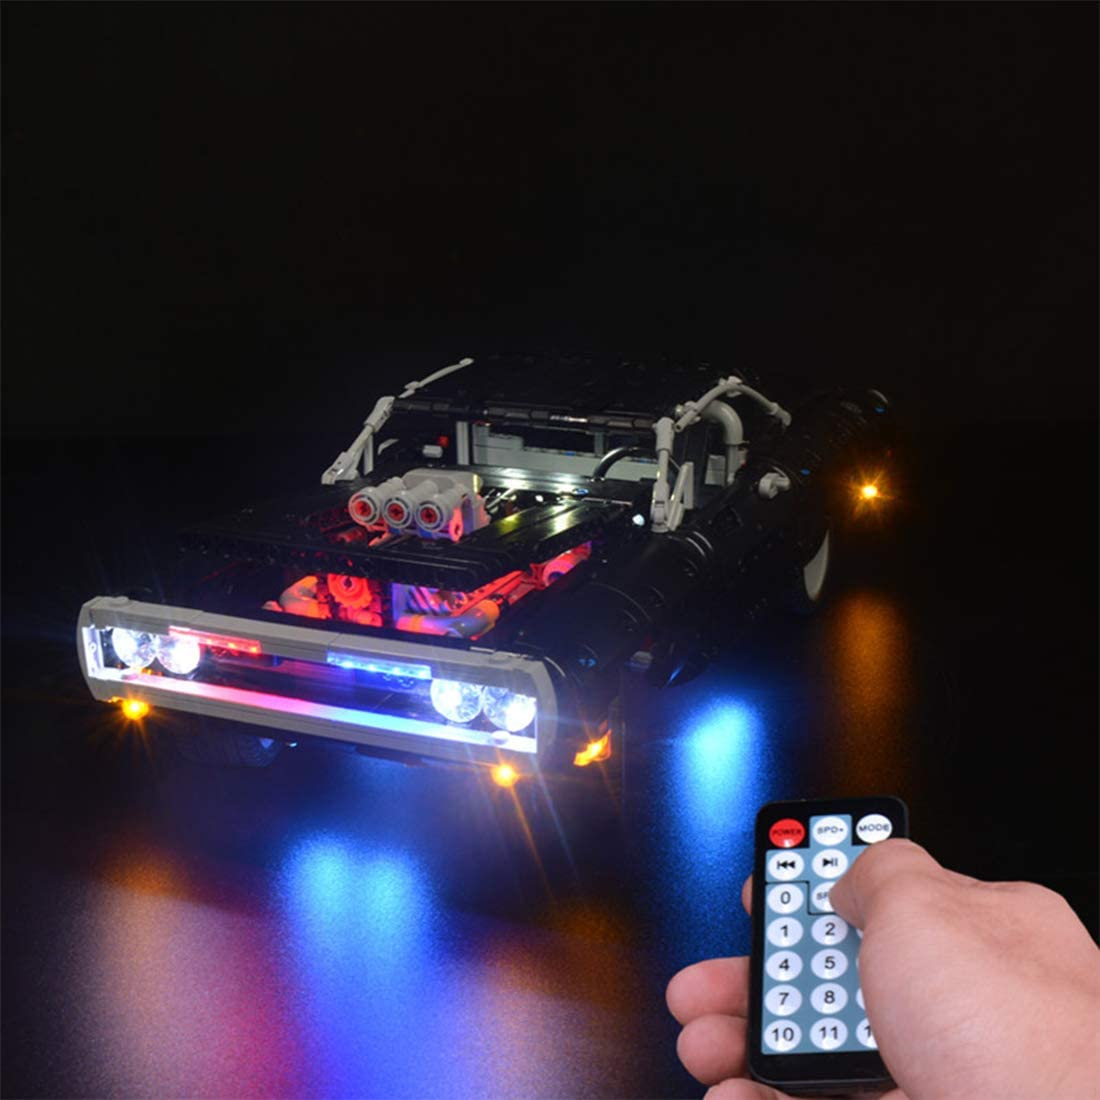 WOLFBSUH LED Light Set for (Technic Doms Dodge Charger) Building Blocks Model - Lighting Kit Compatible with Lego 42111 (LED Included Light Only, NOT Included The Lego Model)